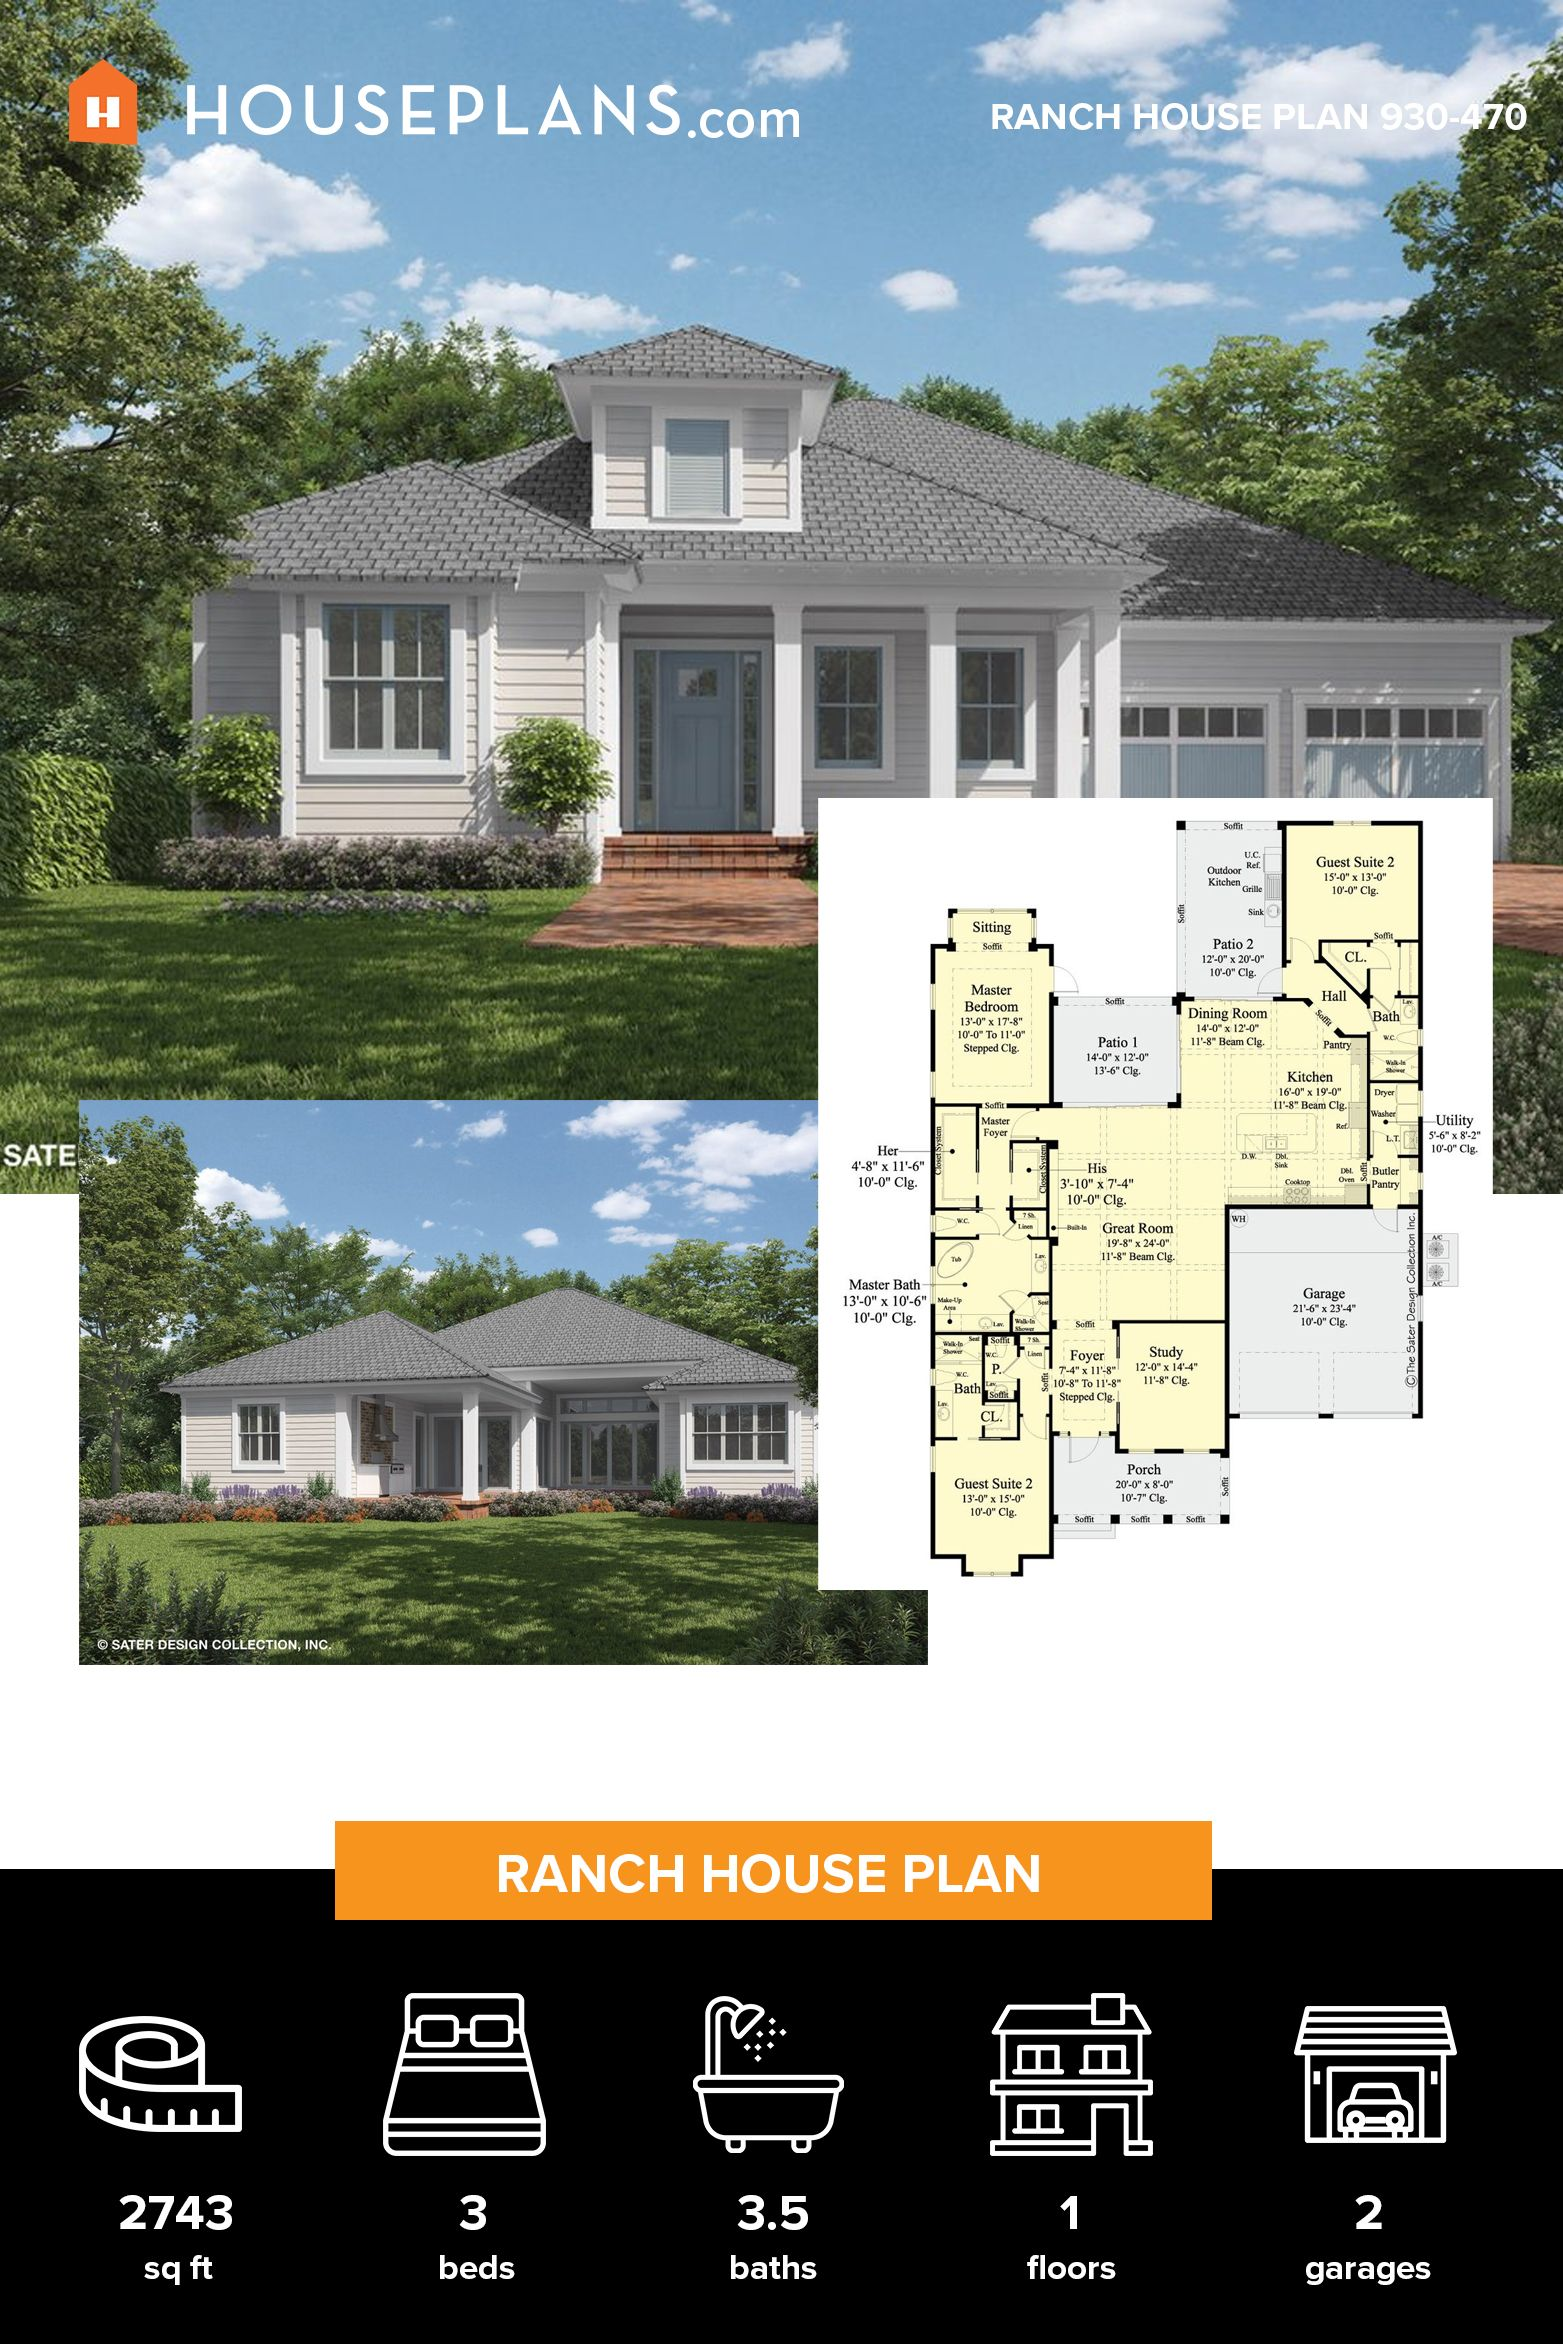 Ranch Style House Plan 3 Beds 3 5 Baths 2743 Sq Ft Plan 930 470 Ranch Style House Plans Ranch House Plans Ranch Style Homes